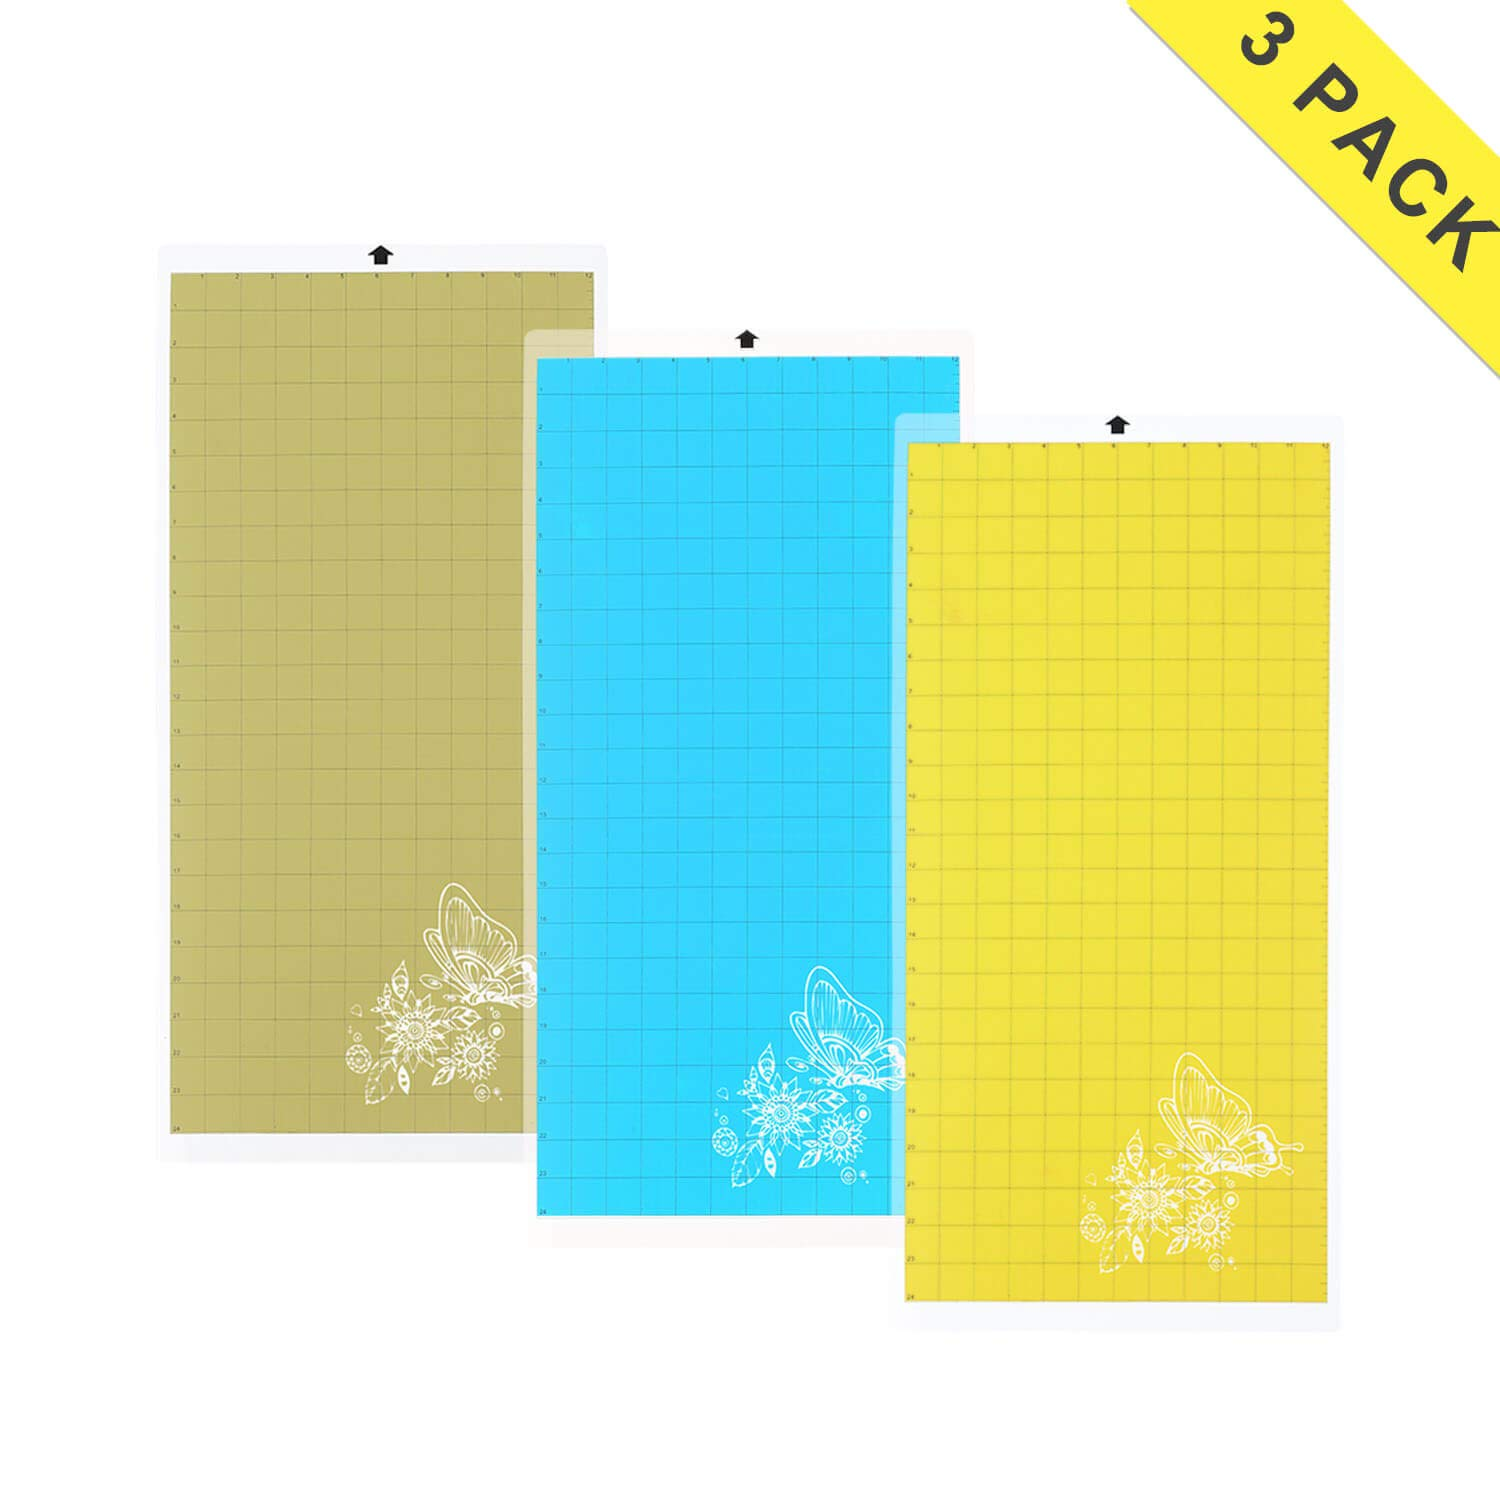 Cameo Cutting Mat Variety 3 Packs 12'' x 24'' - Strong, Standard, Light Grip Adhesive Cutting Mat Suit for Cricut, Silhouette ...